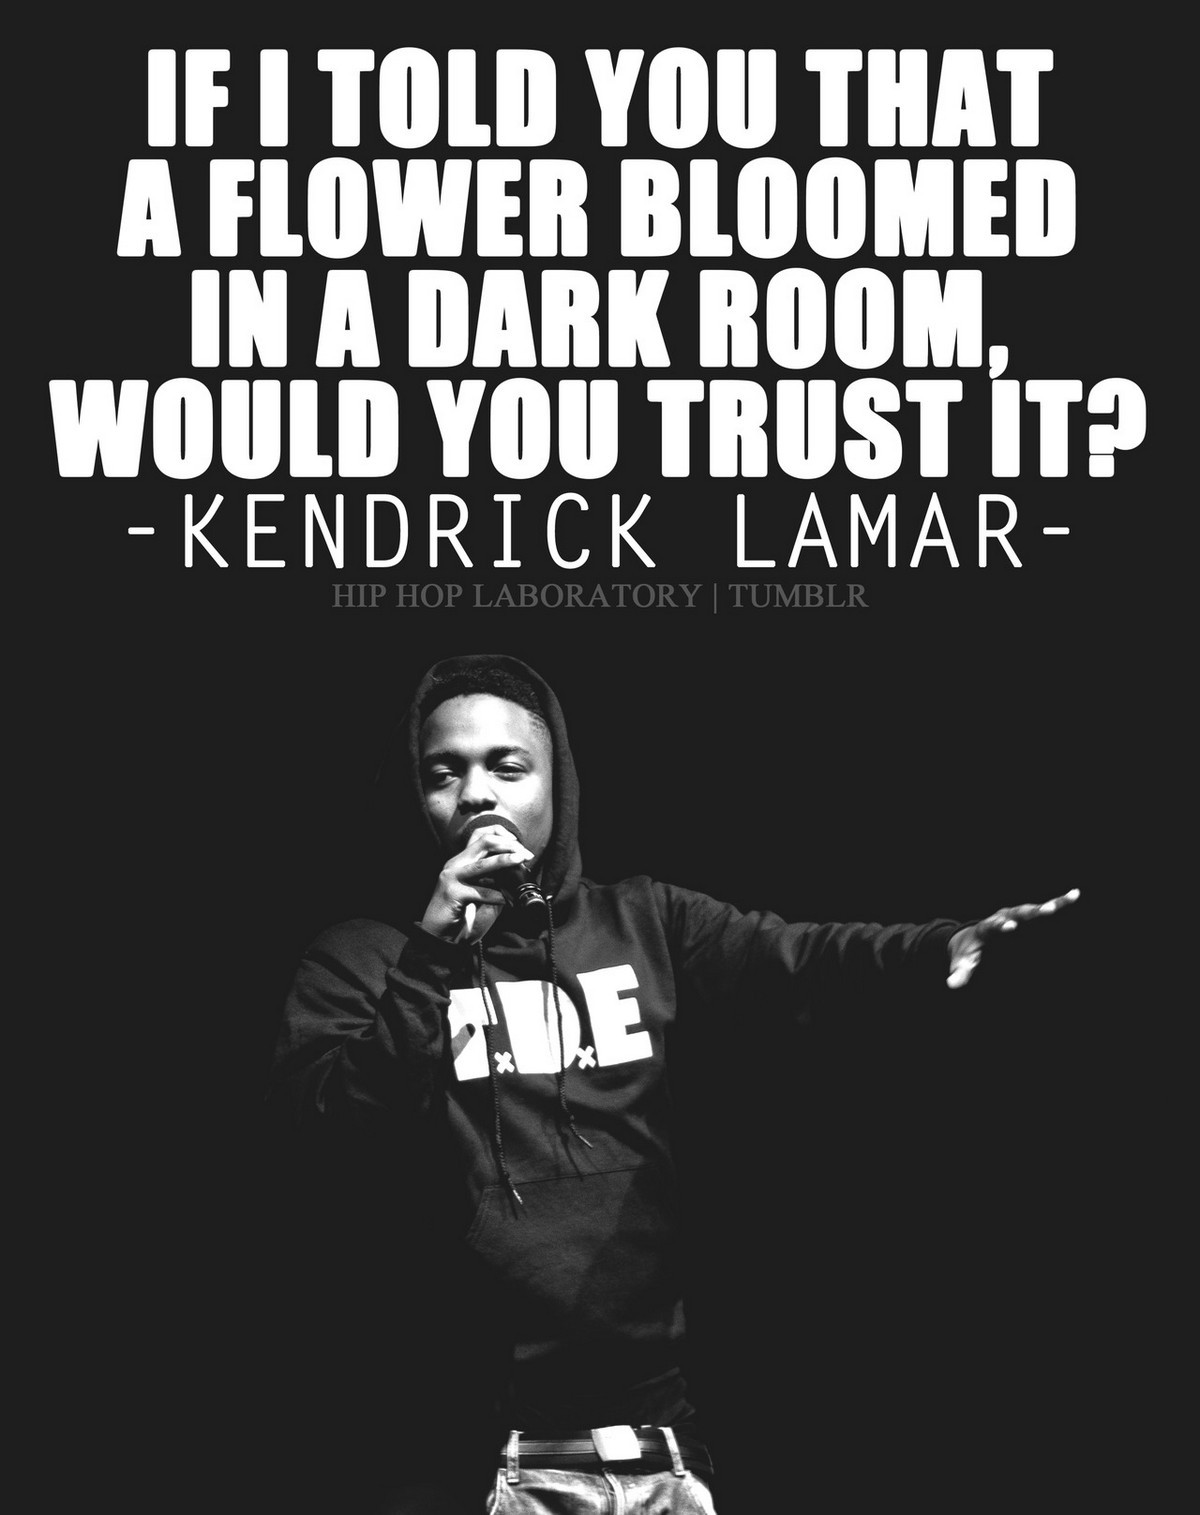 If i told you a flower bloomed in the dark